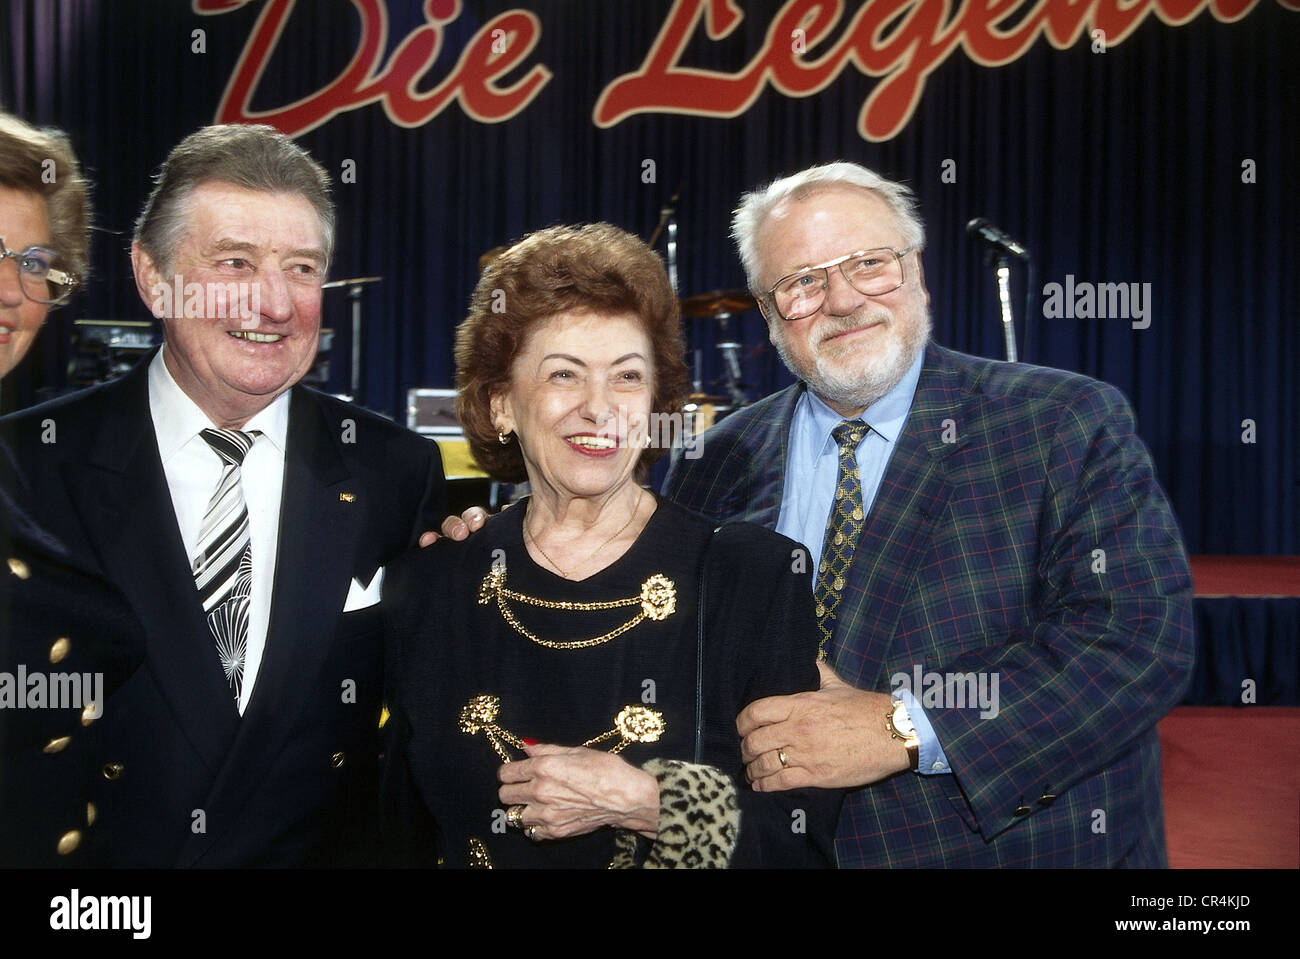 Walter, Fritz, 31.10.1920 - 17.6.2002, German footballer, group picture, with his wife Italia and the actor Guenter - Stock Image